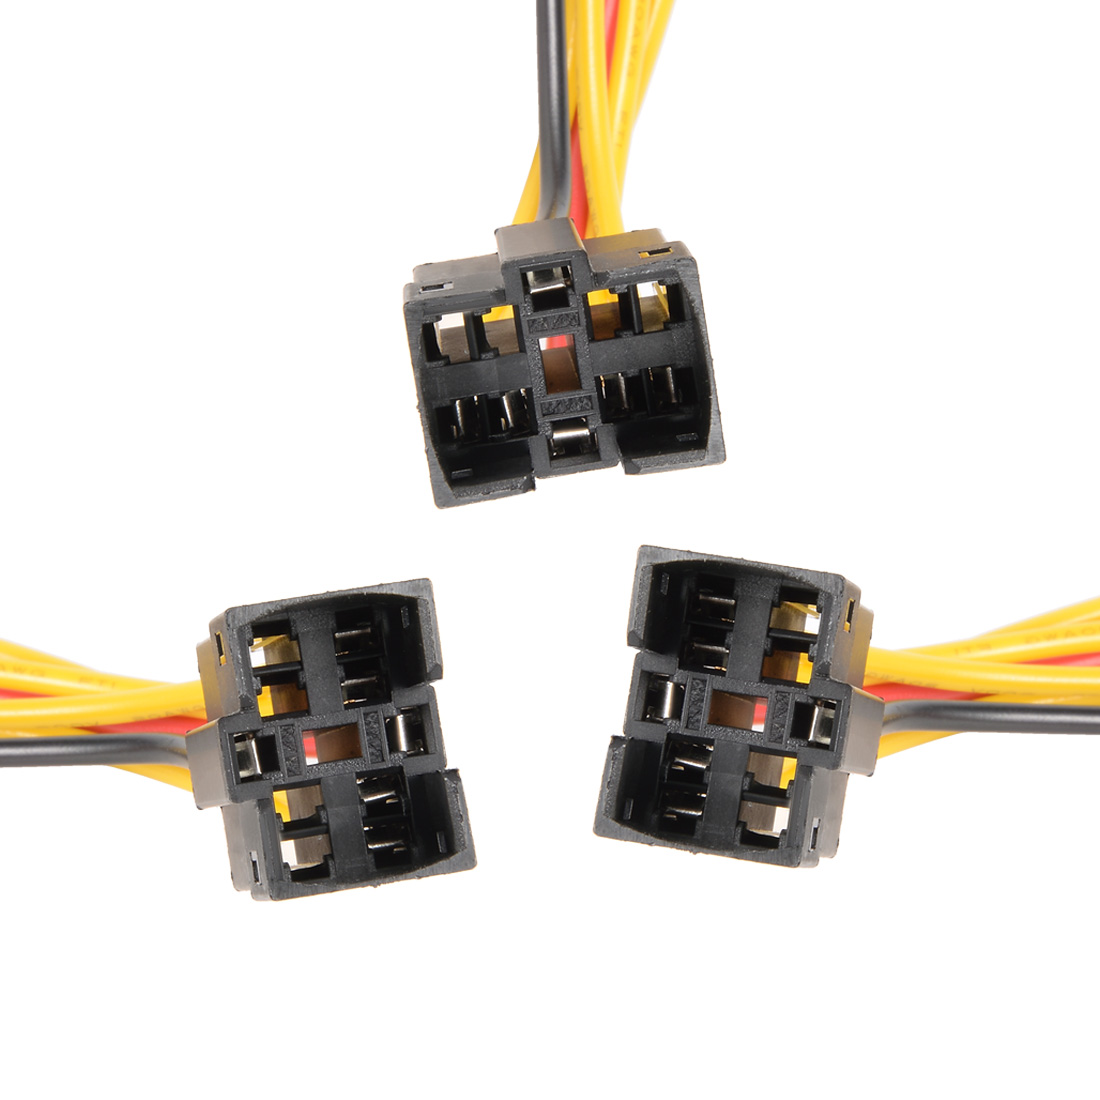 Unique Bargains 3 Pcs J25-C-20 20cm Long 5-cable Wired Connector Adapter for Push Button Switch